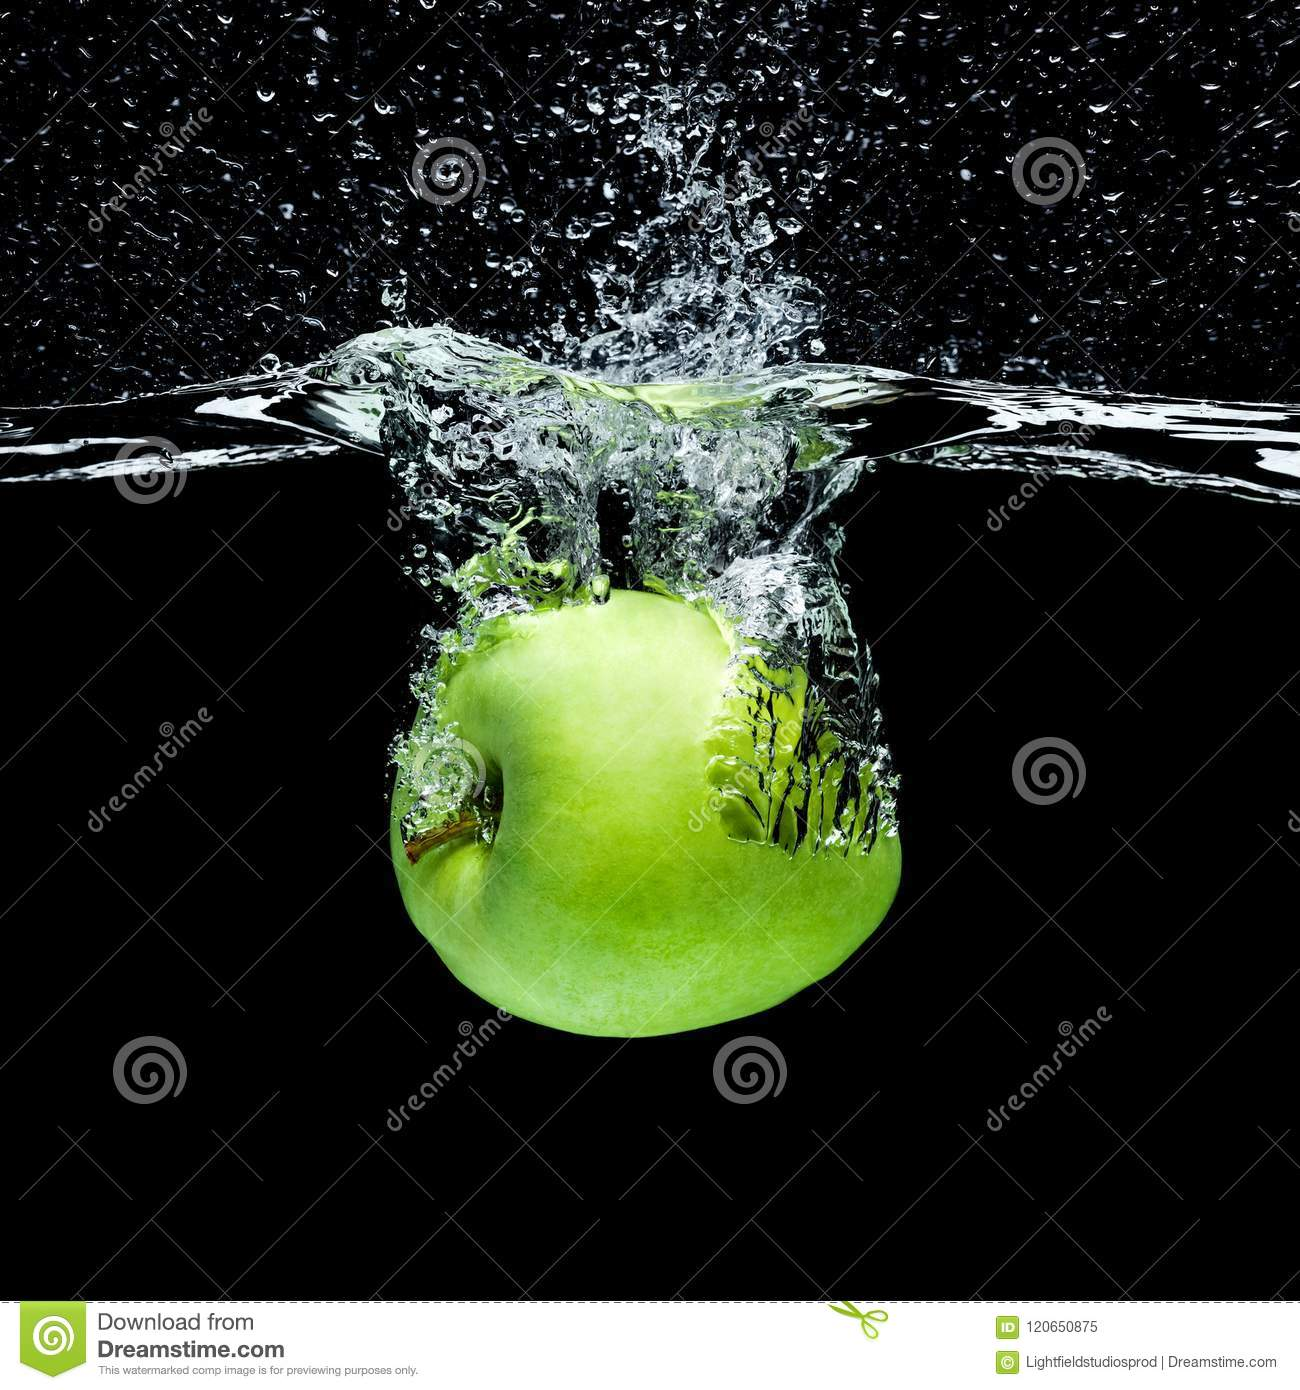 close up view of green apple falling into water